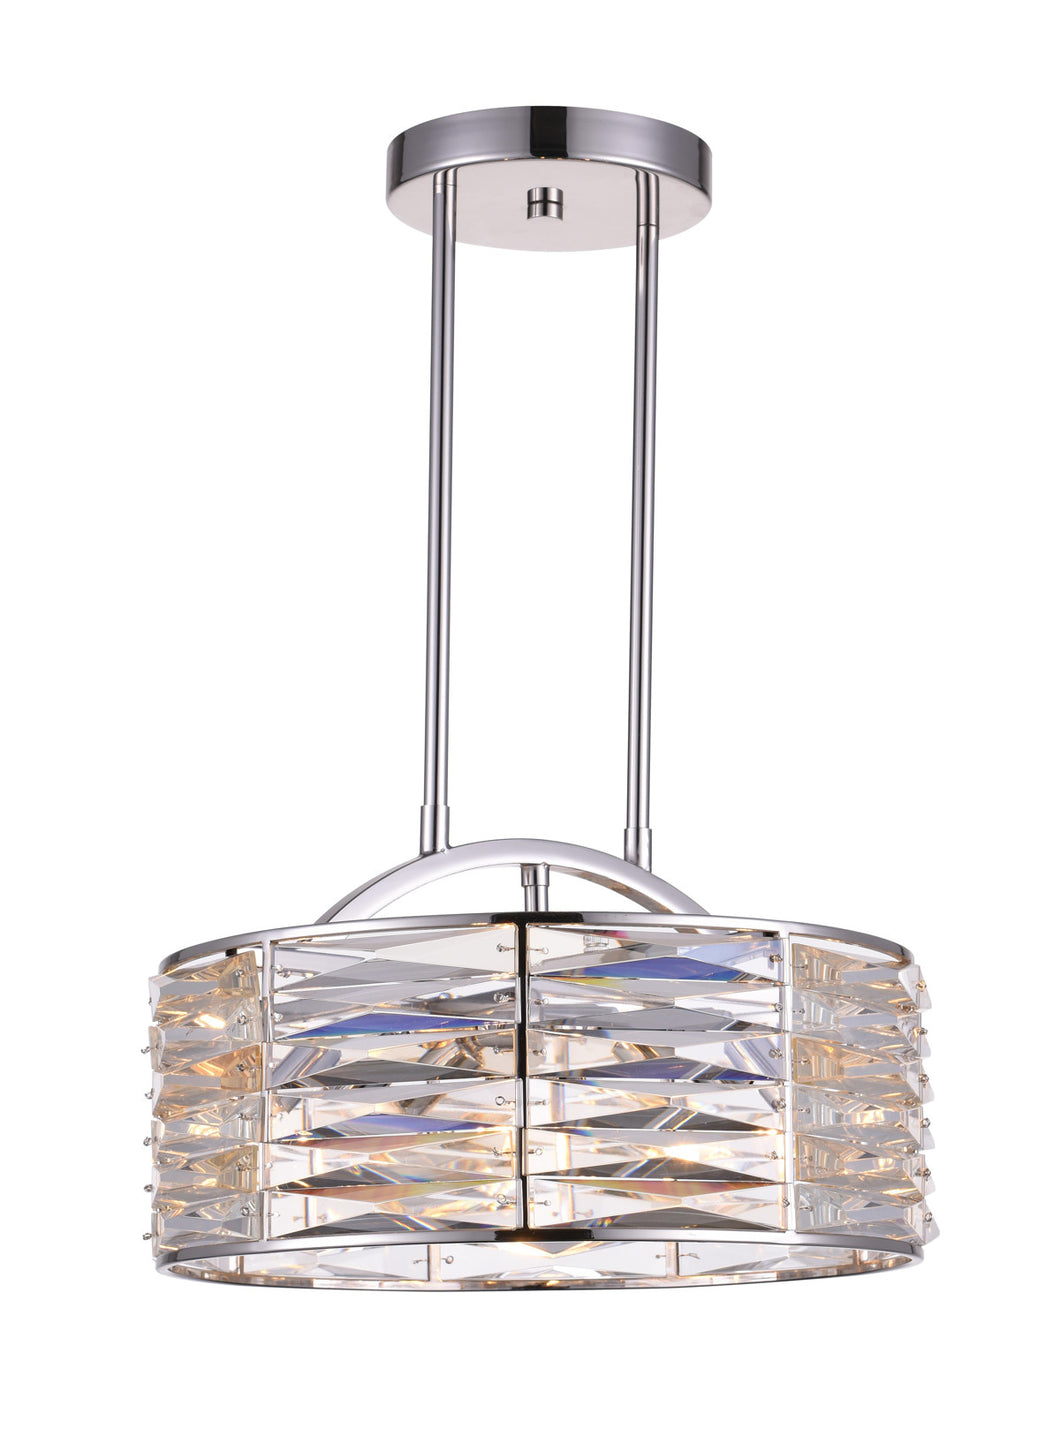 4 Light Down Chandelier with Bright Nickel finish